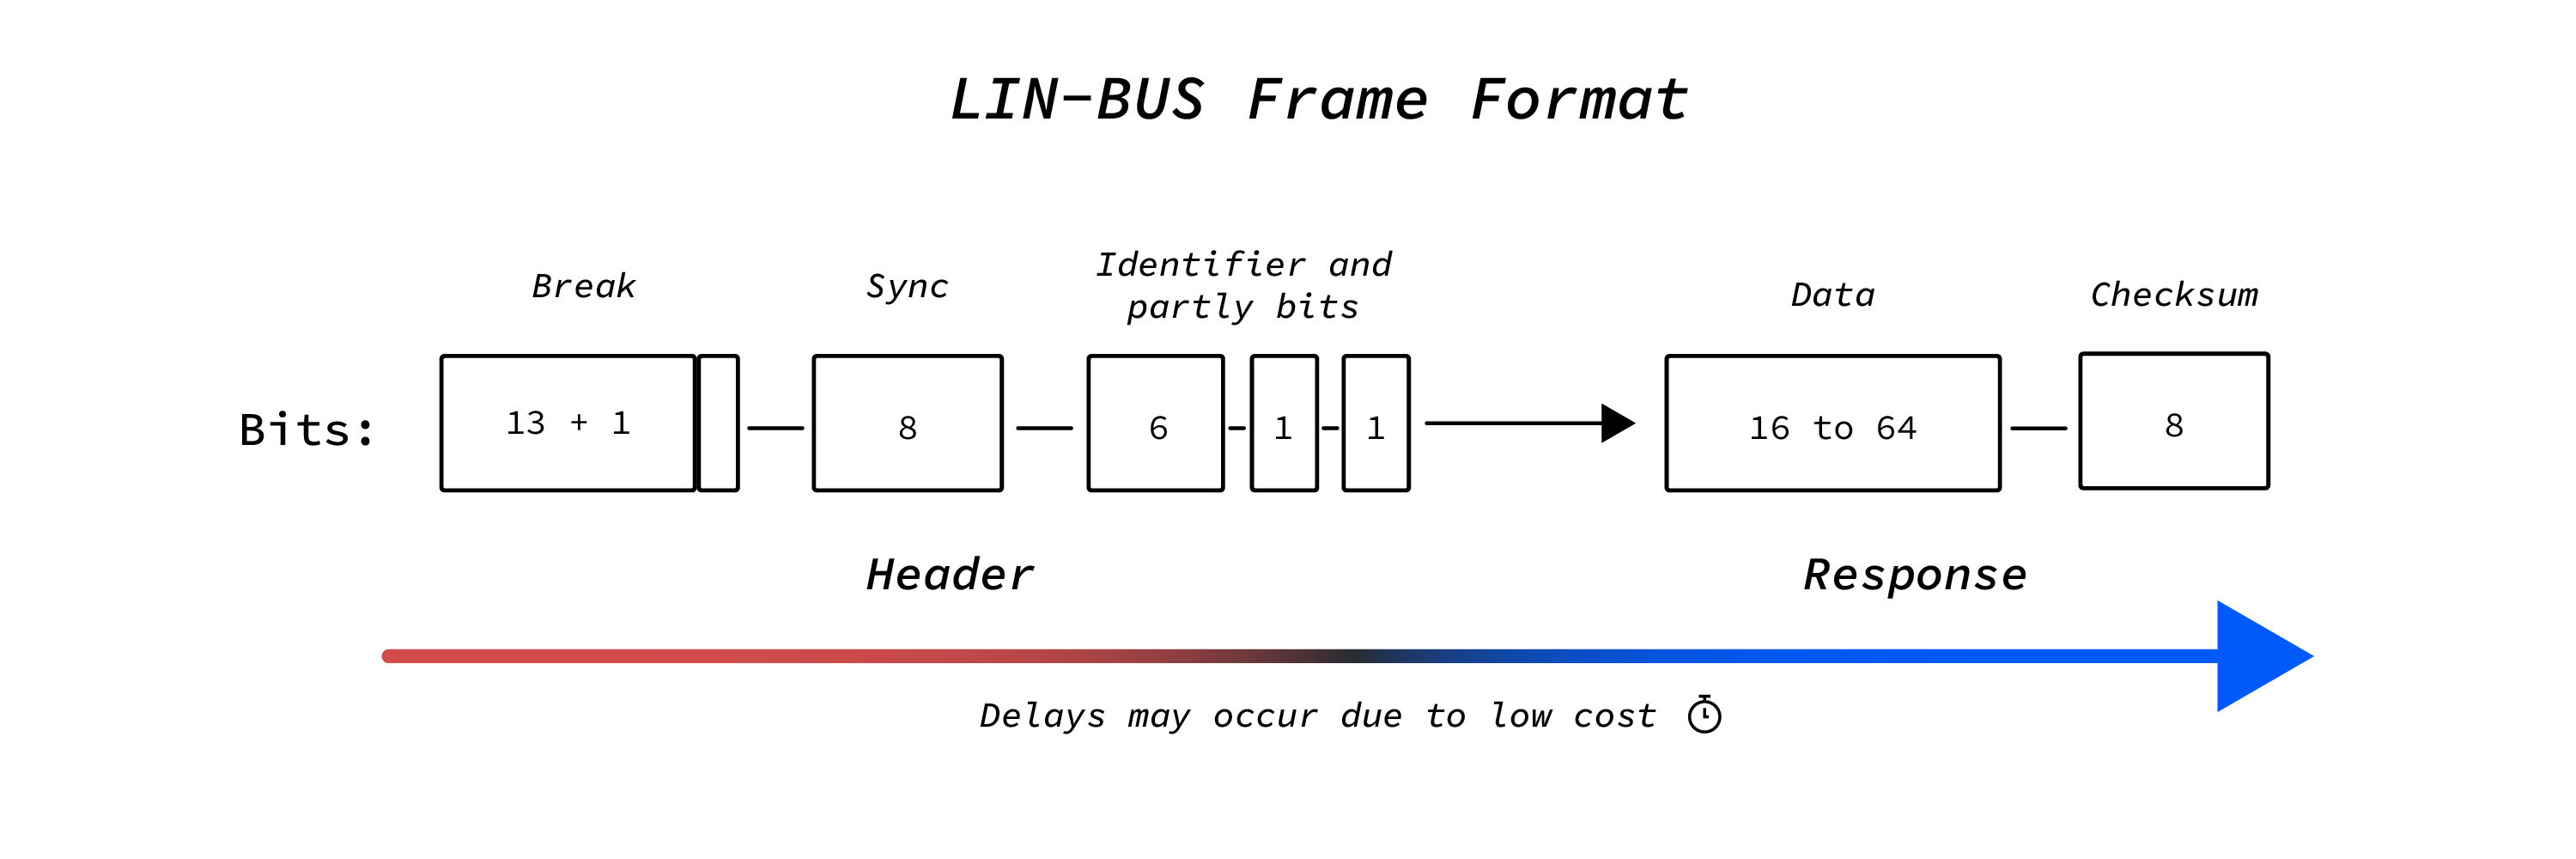 LIN Bus frame explained in an easy picture